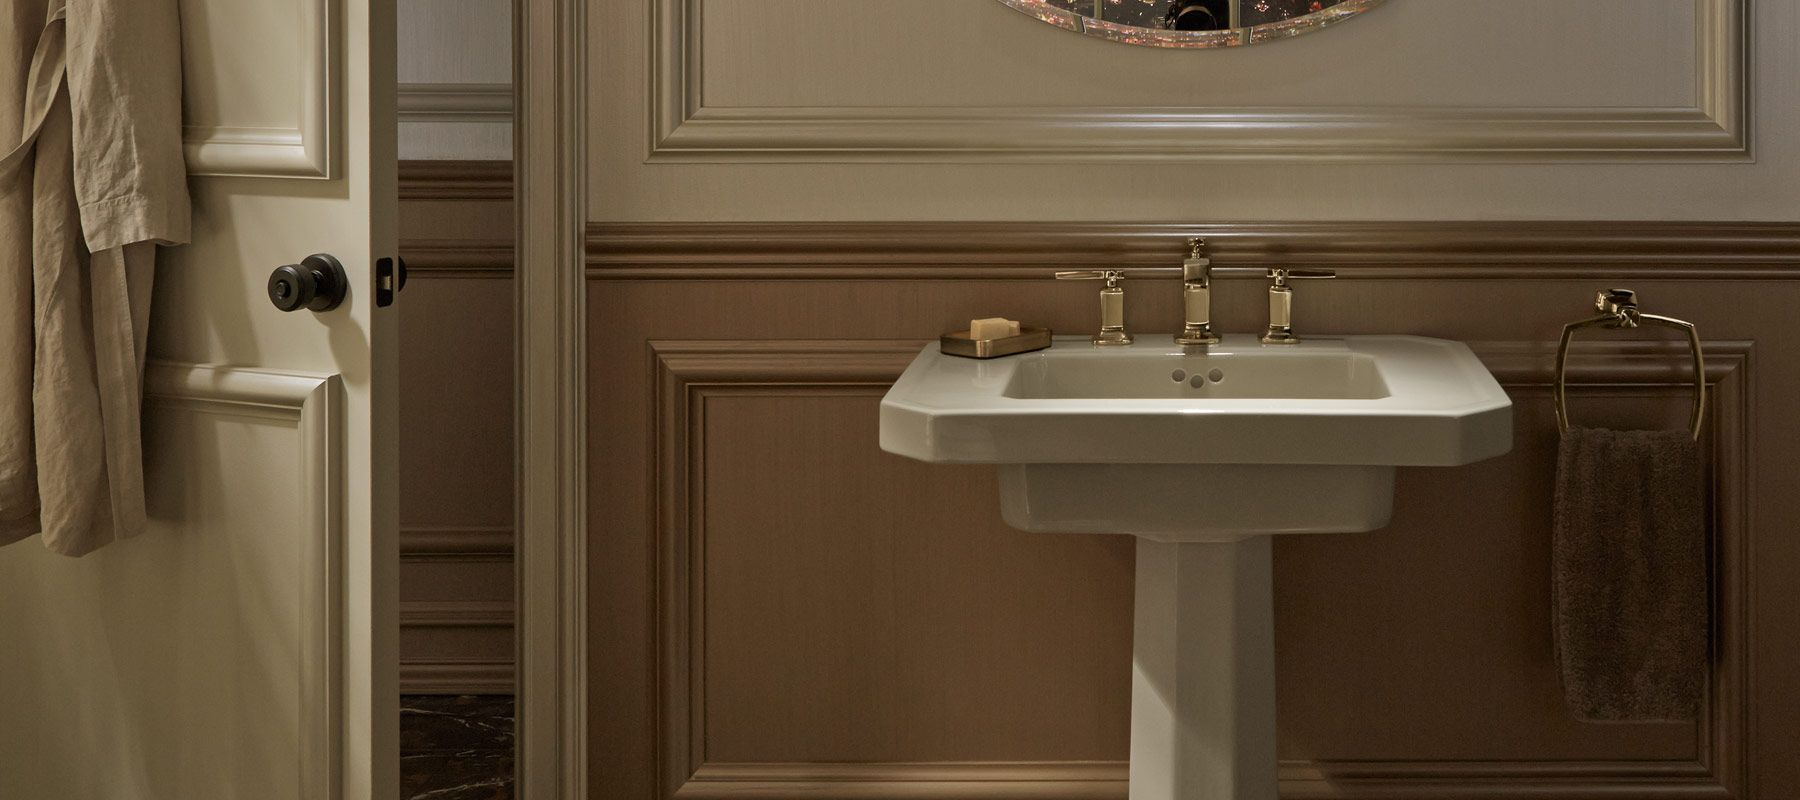 gleaming gold details - Bathroom Accessories Kohler